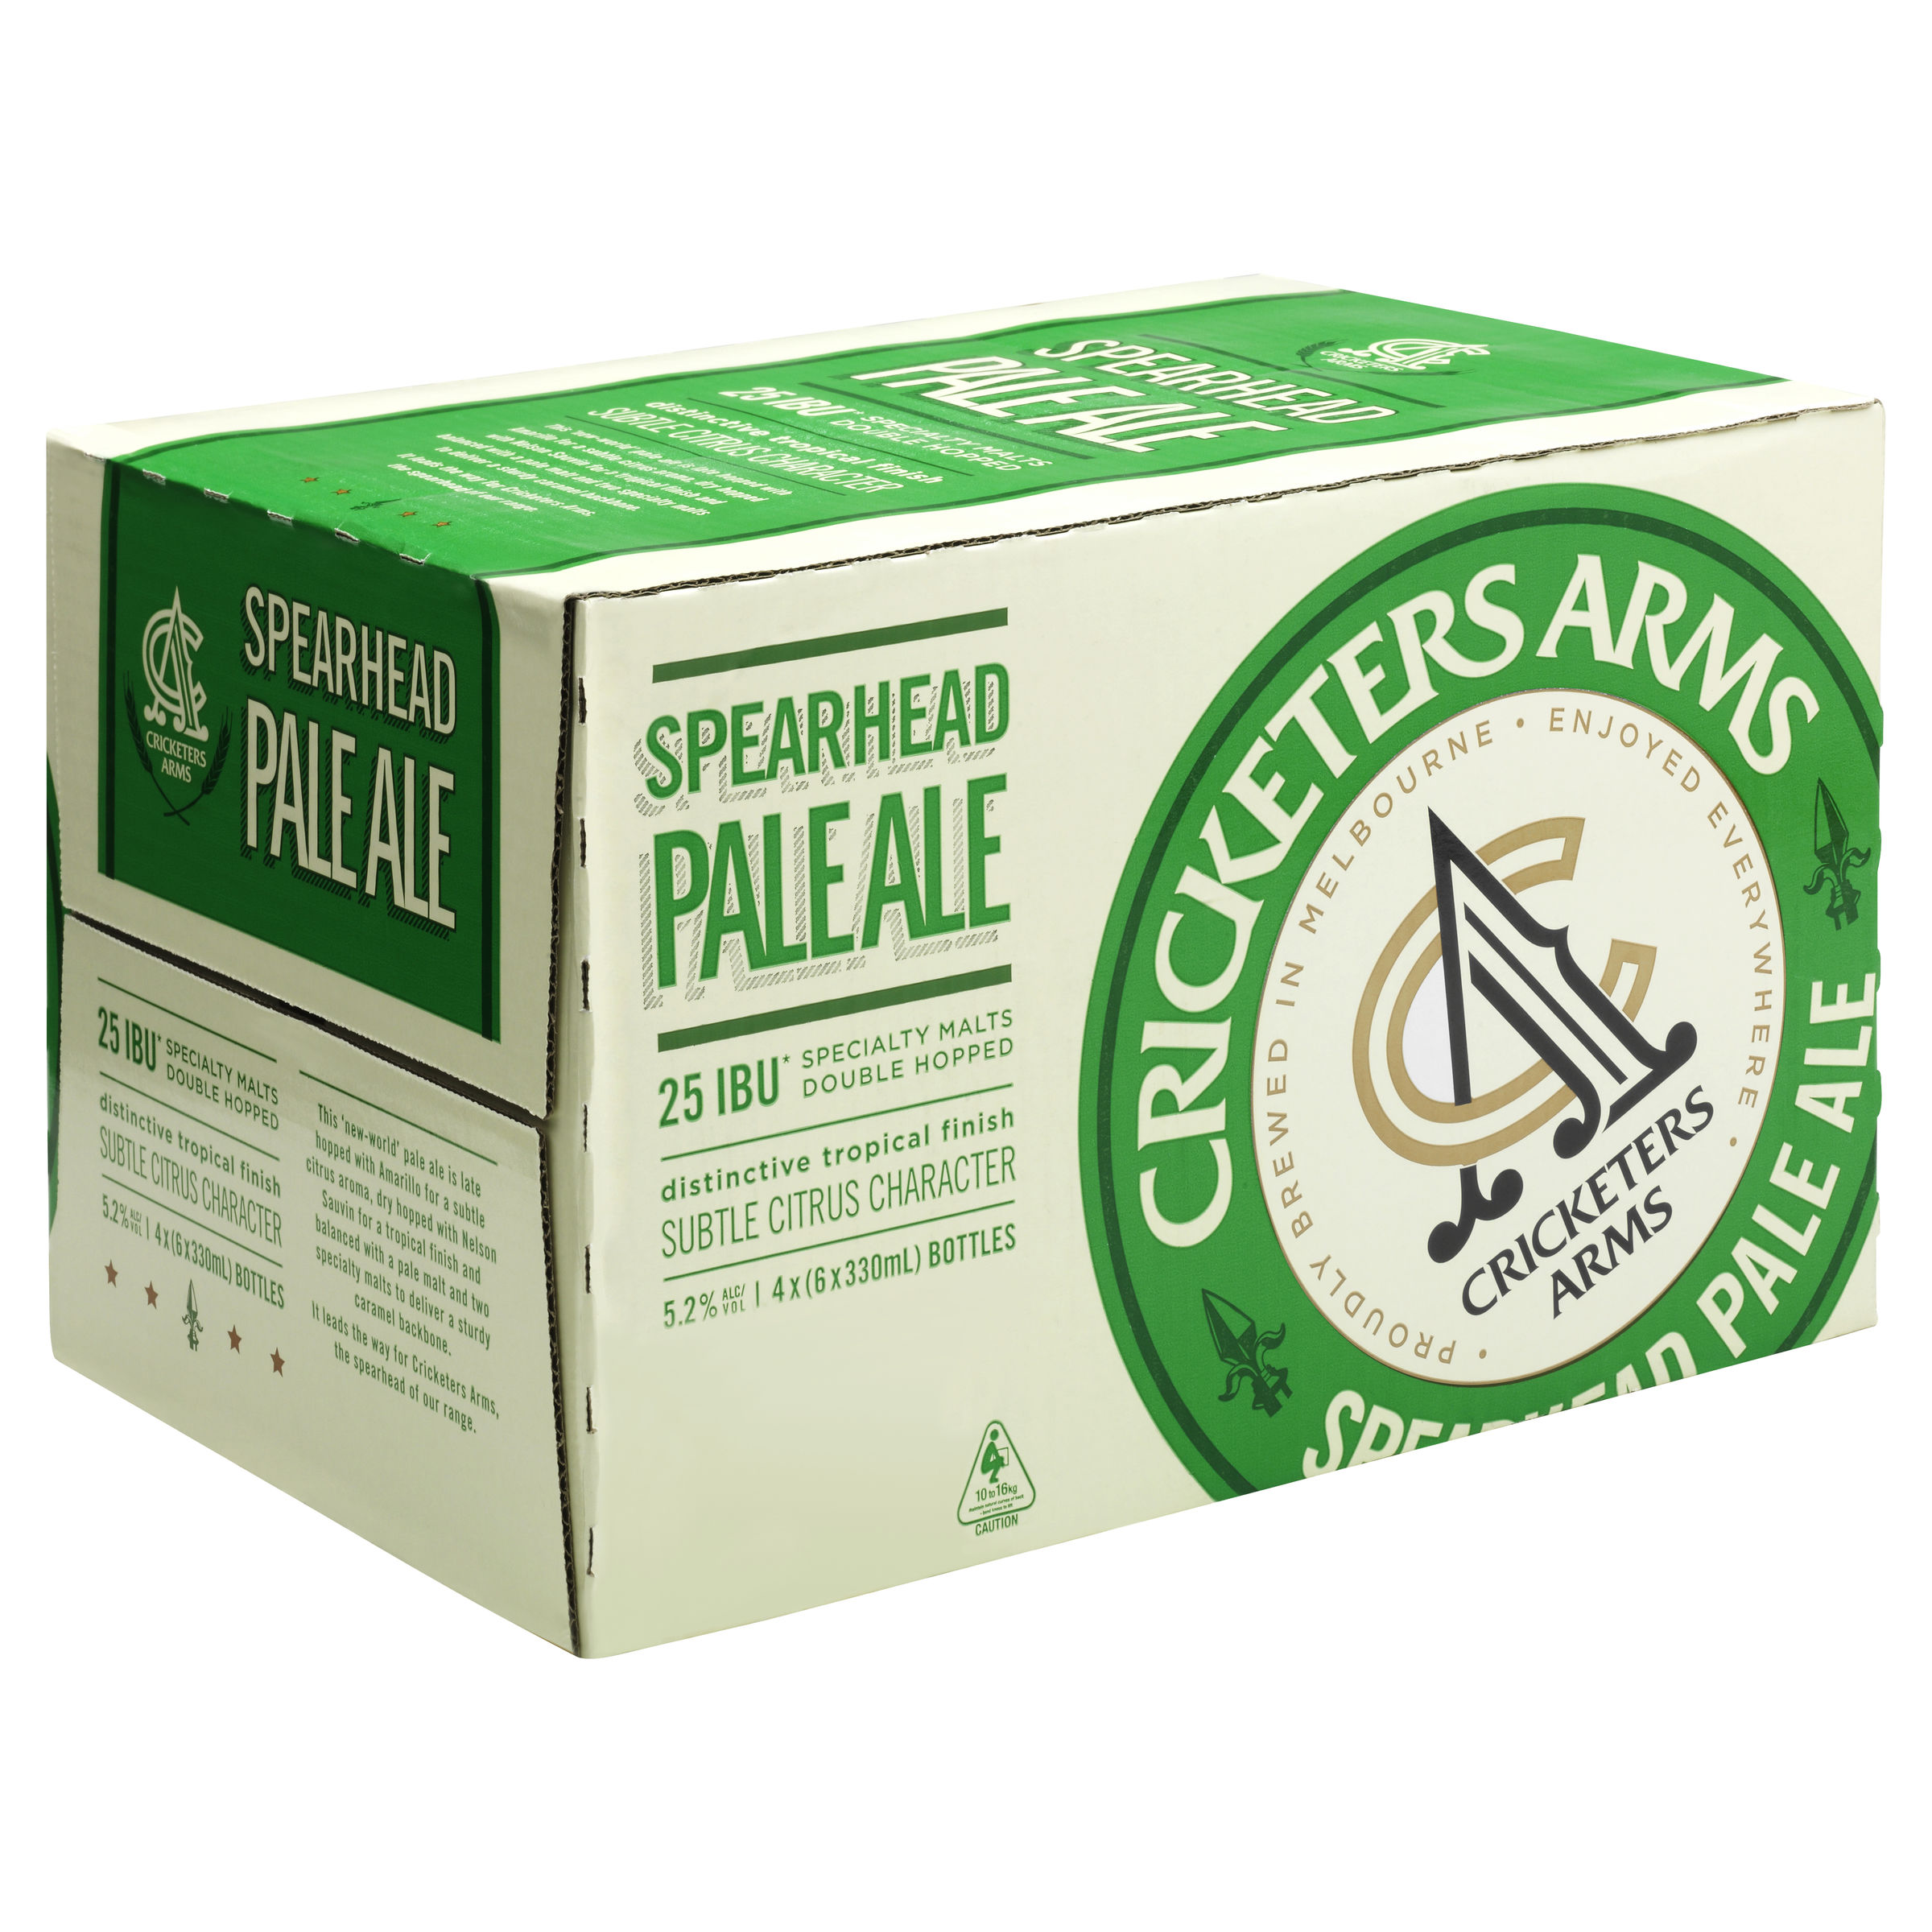 CRICKETERS ARMS SPEARHEAD PALE ALE